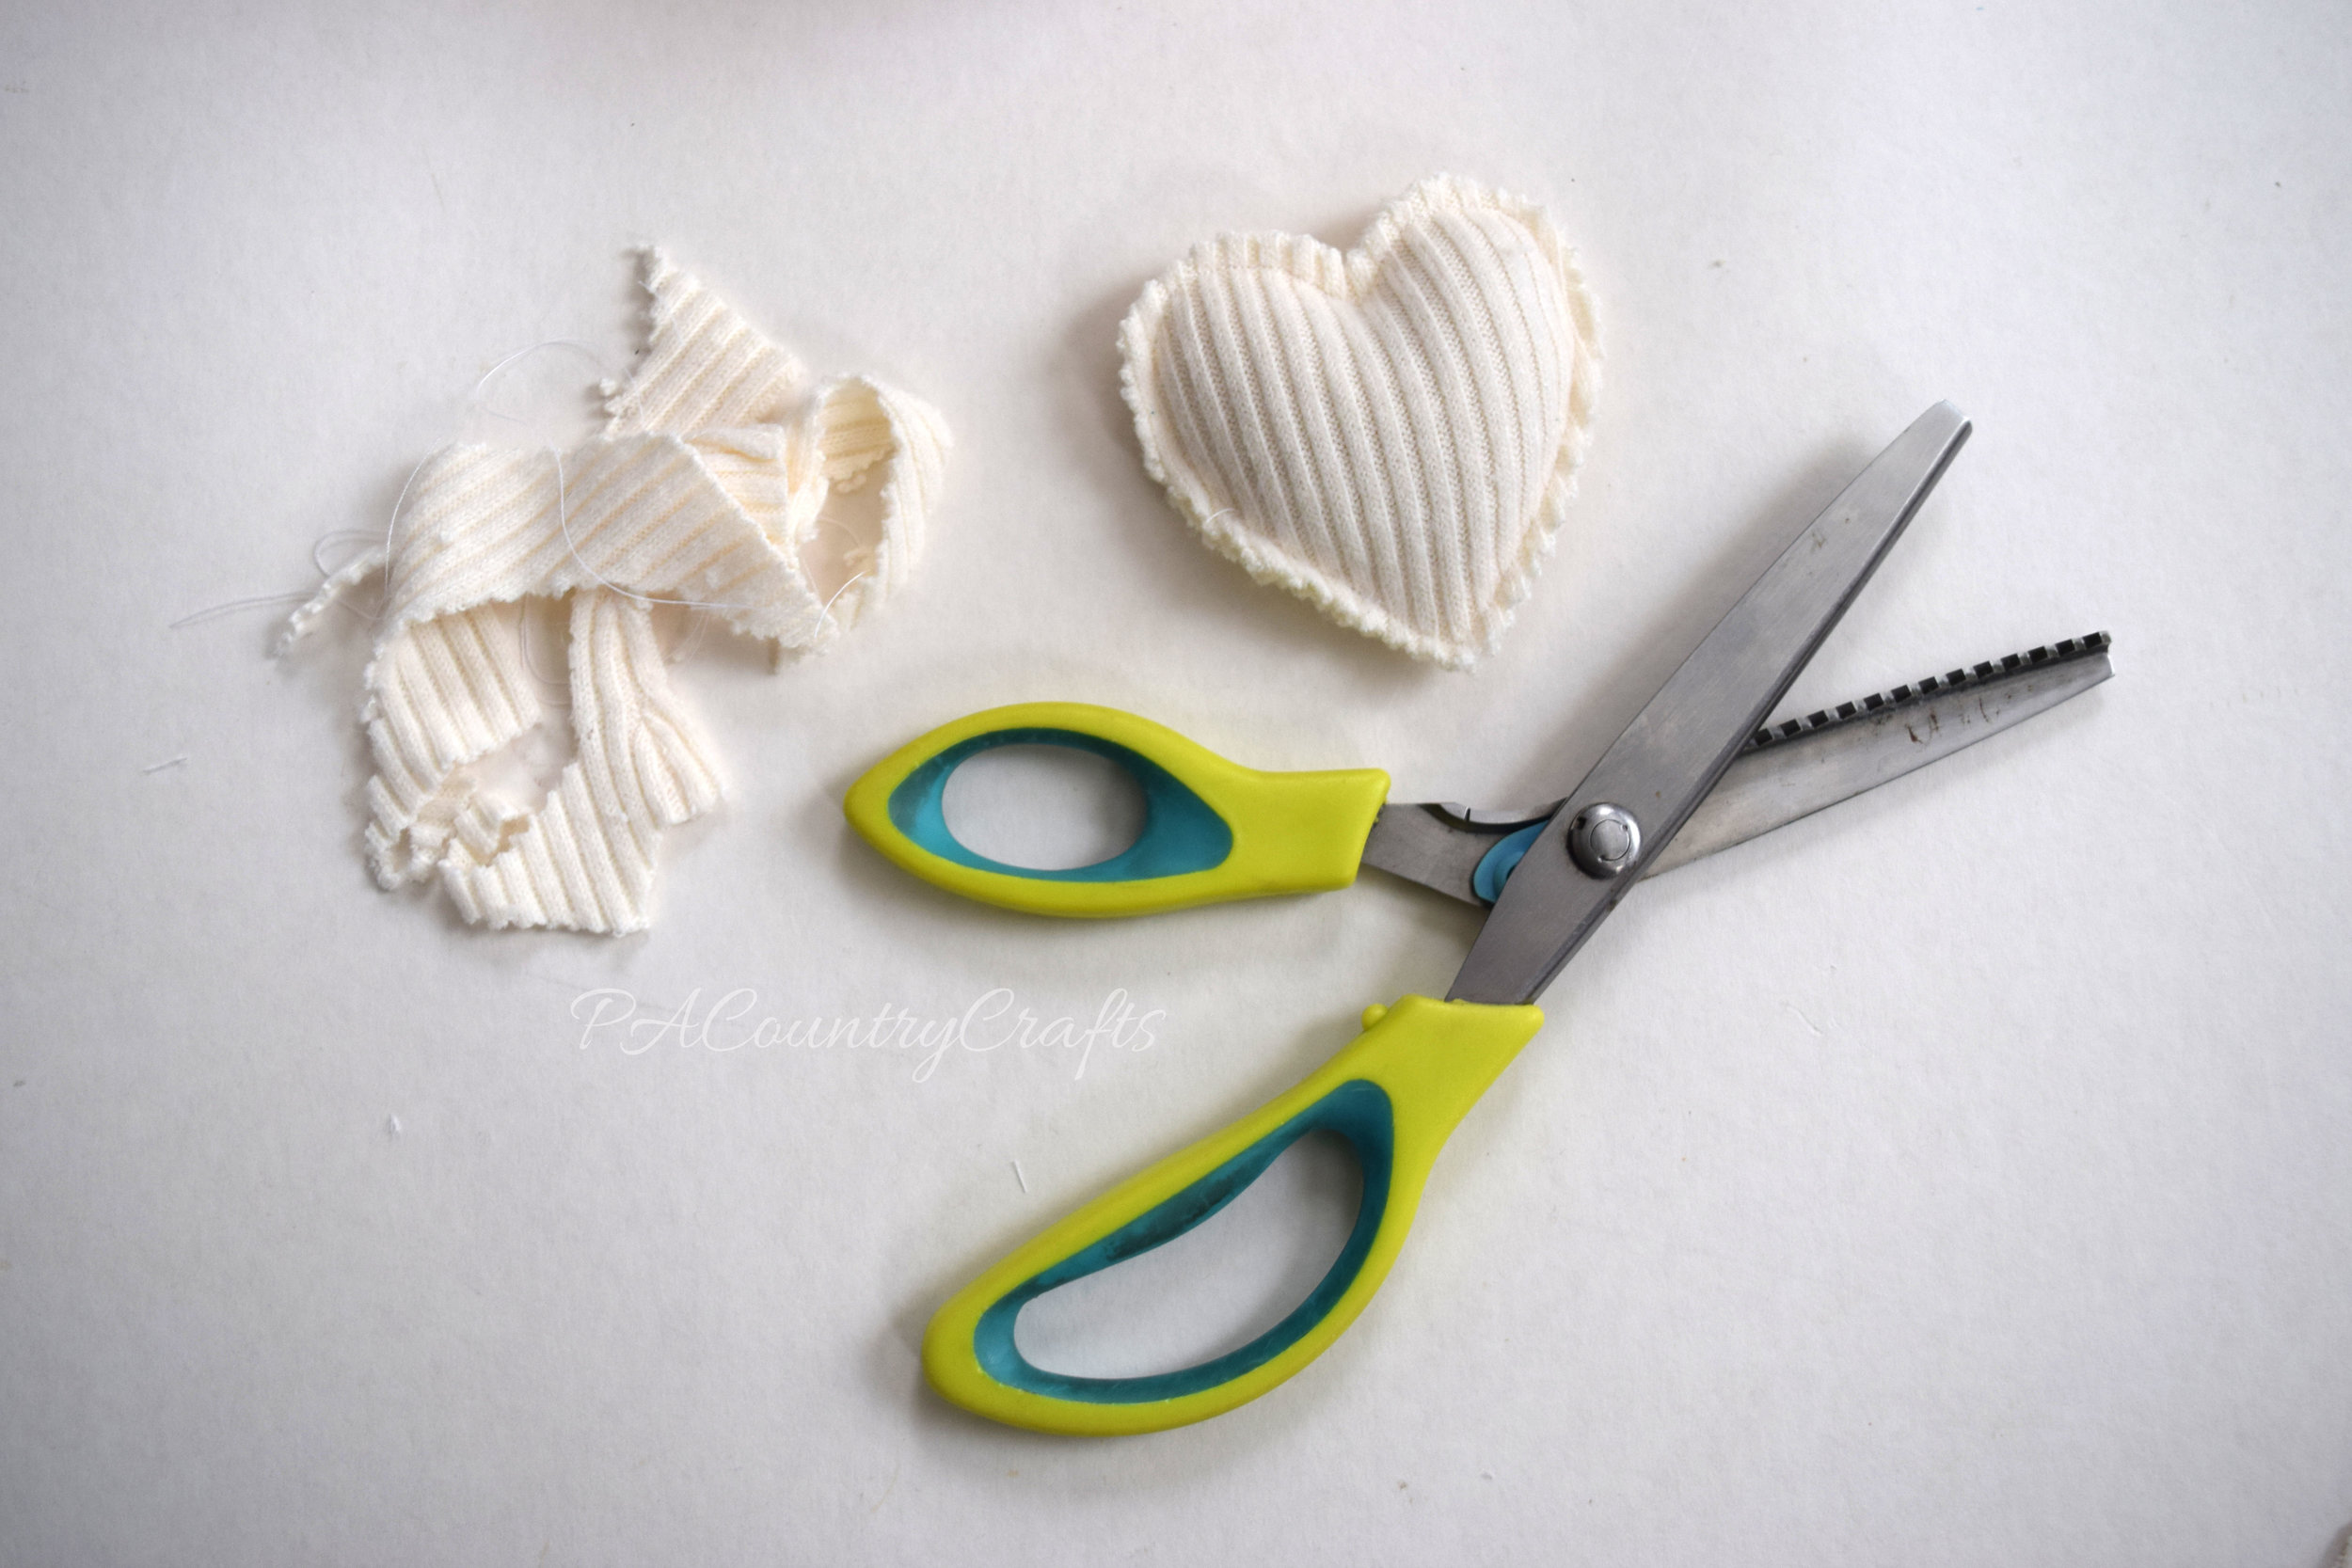 How to make hand warmers from old sweaters without small pieces to sew